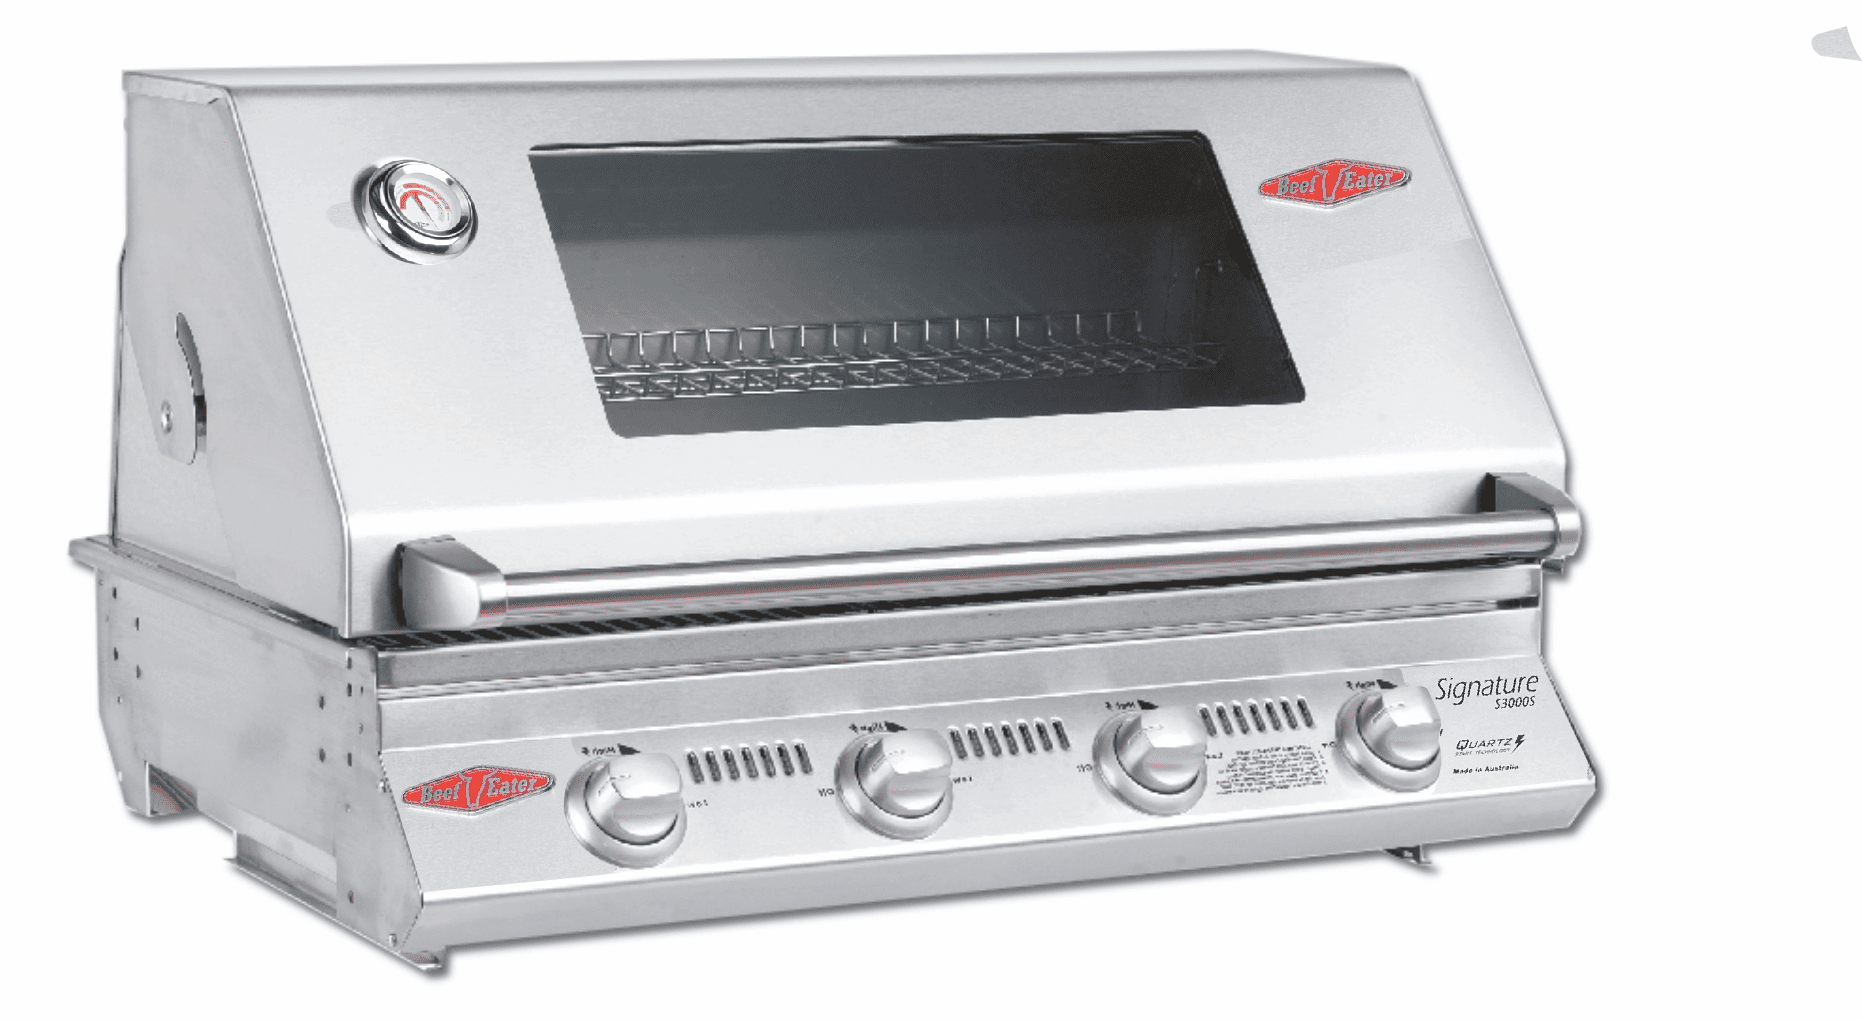 Beefeater 4 burner 13840 Signature Stainless Steel Natural Gas